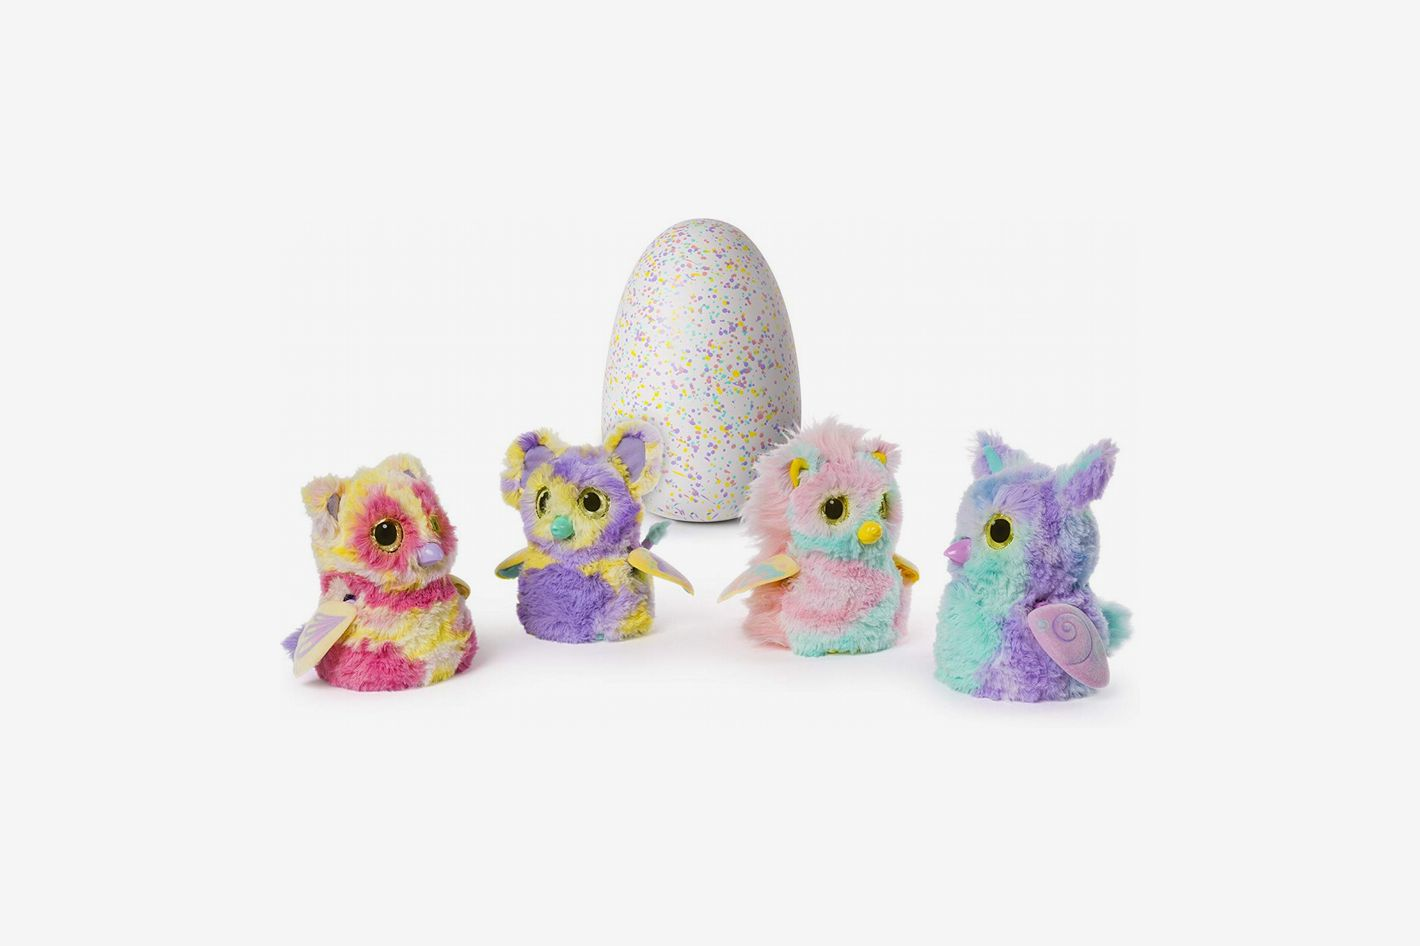 Hatchimals Mystery — Hatch 1 of 4 Fluffy Interactive Mystery Characters From Cloud Cove